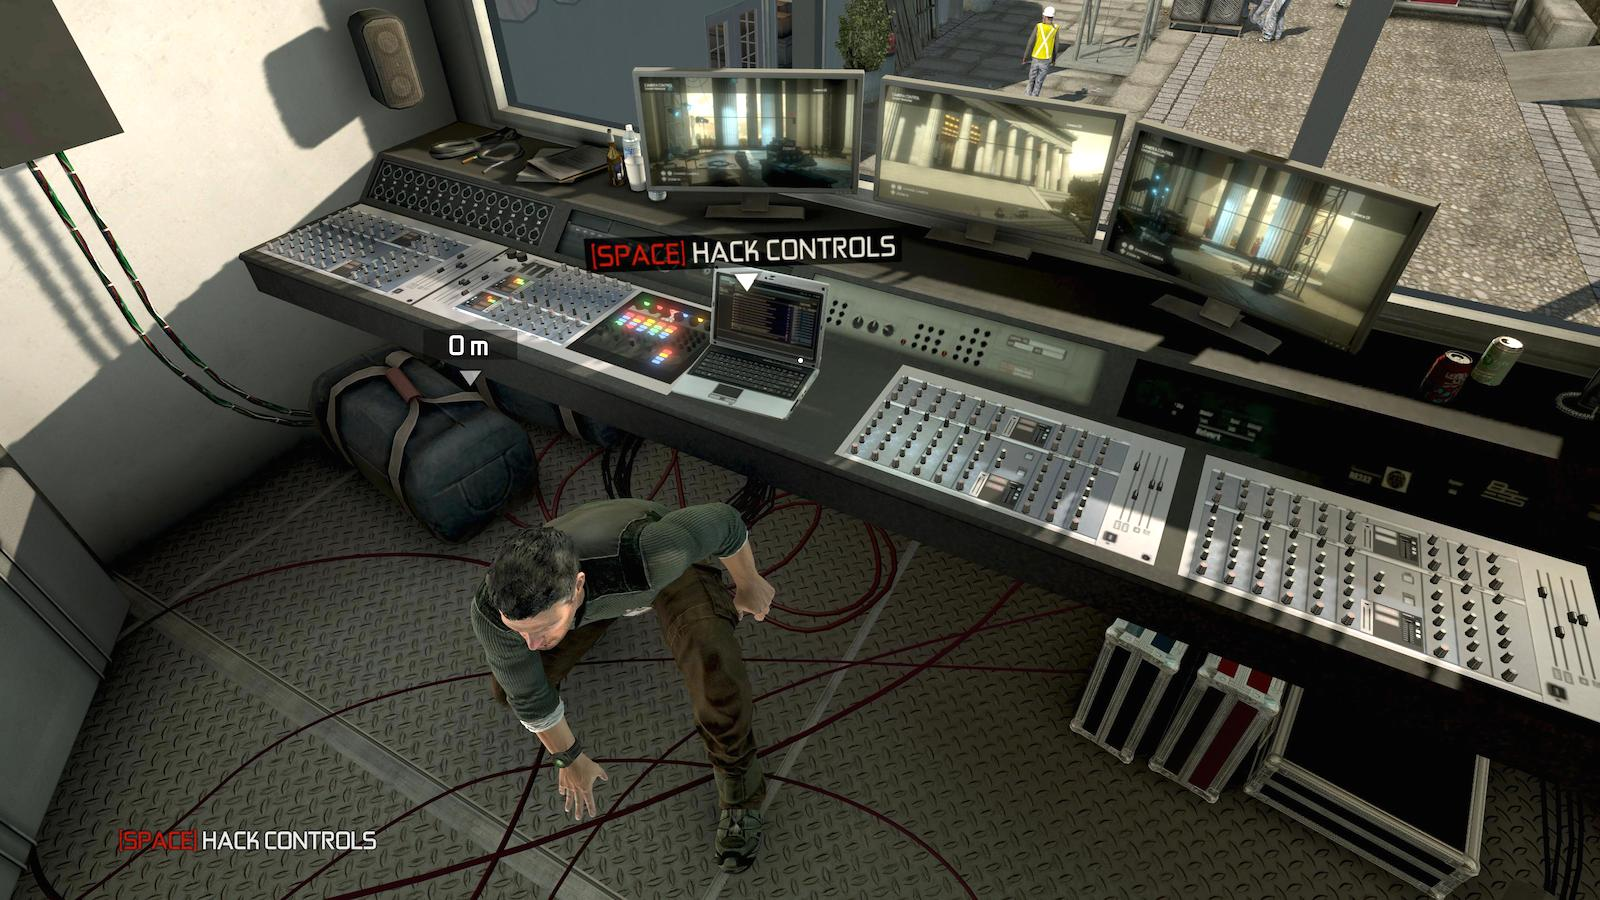 Splinter Cell: Conviction  maintains a meaningless spacebar for unimportant player-character actions